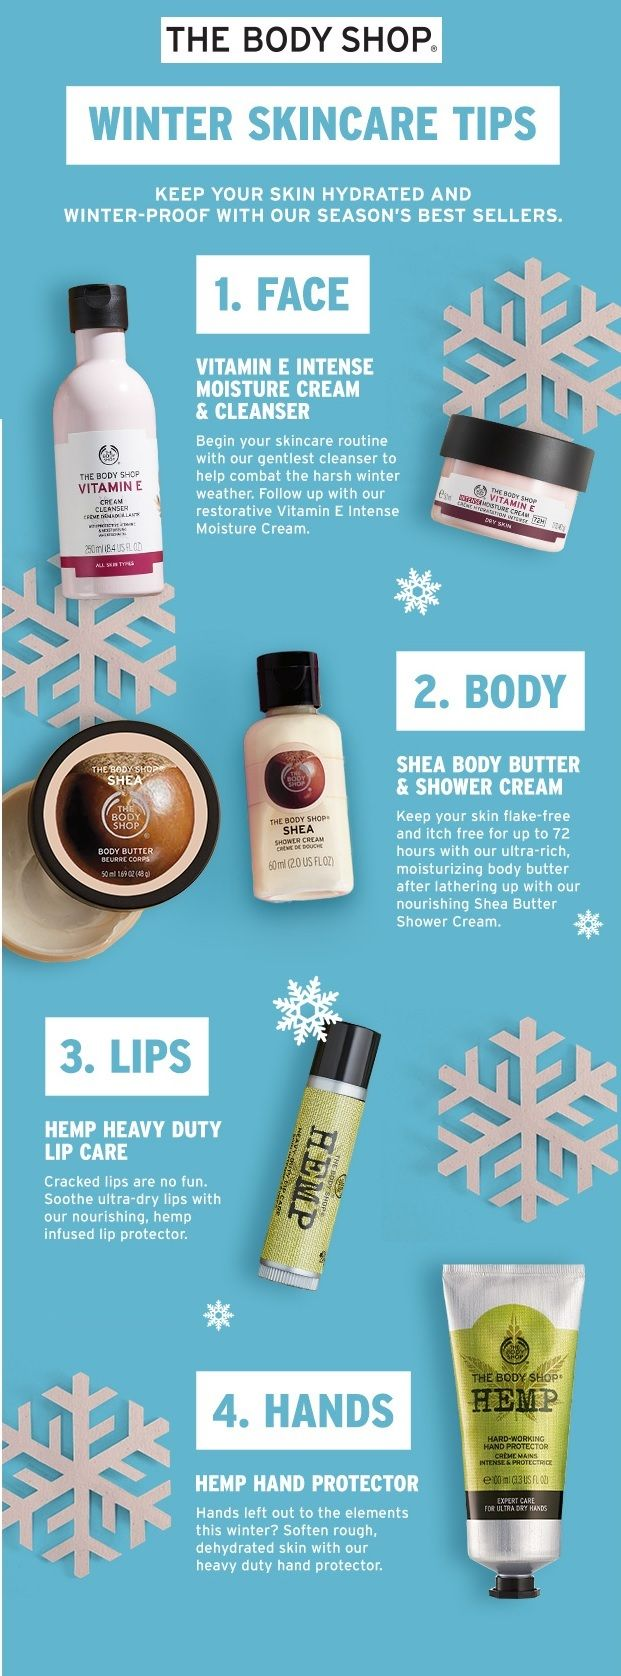 Winter Skincare Tips Body Shop Skincare Body Shop At Home The Body Shop Gifts